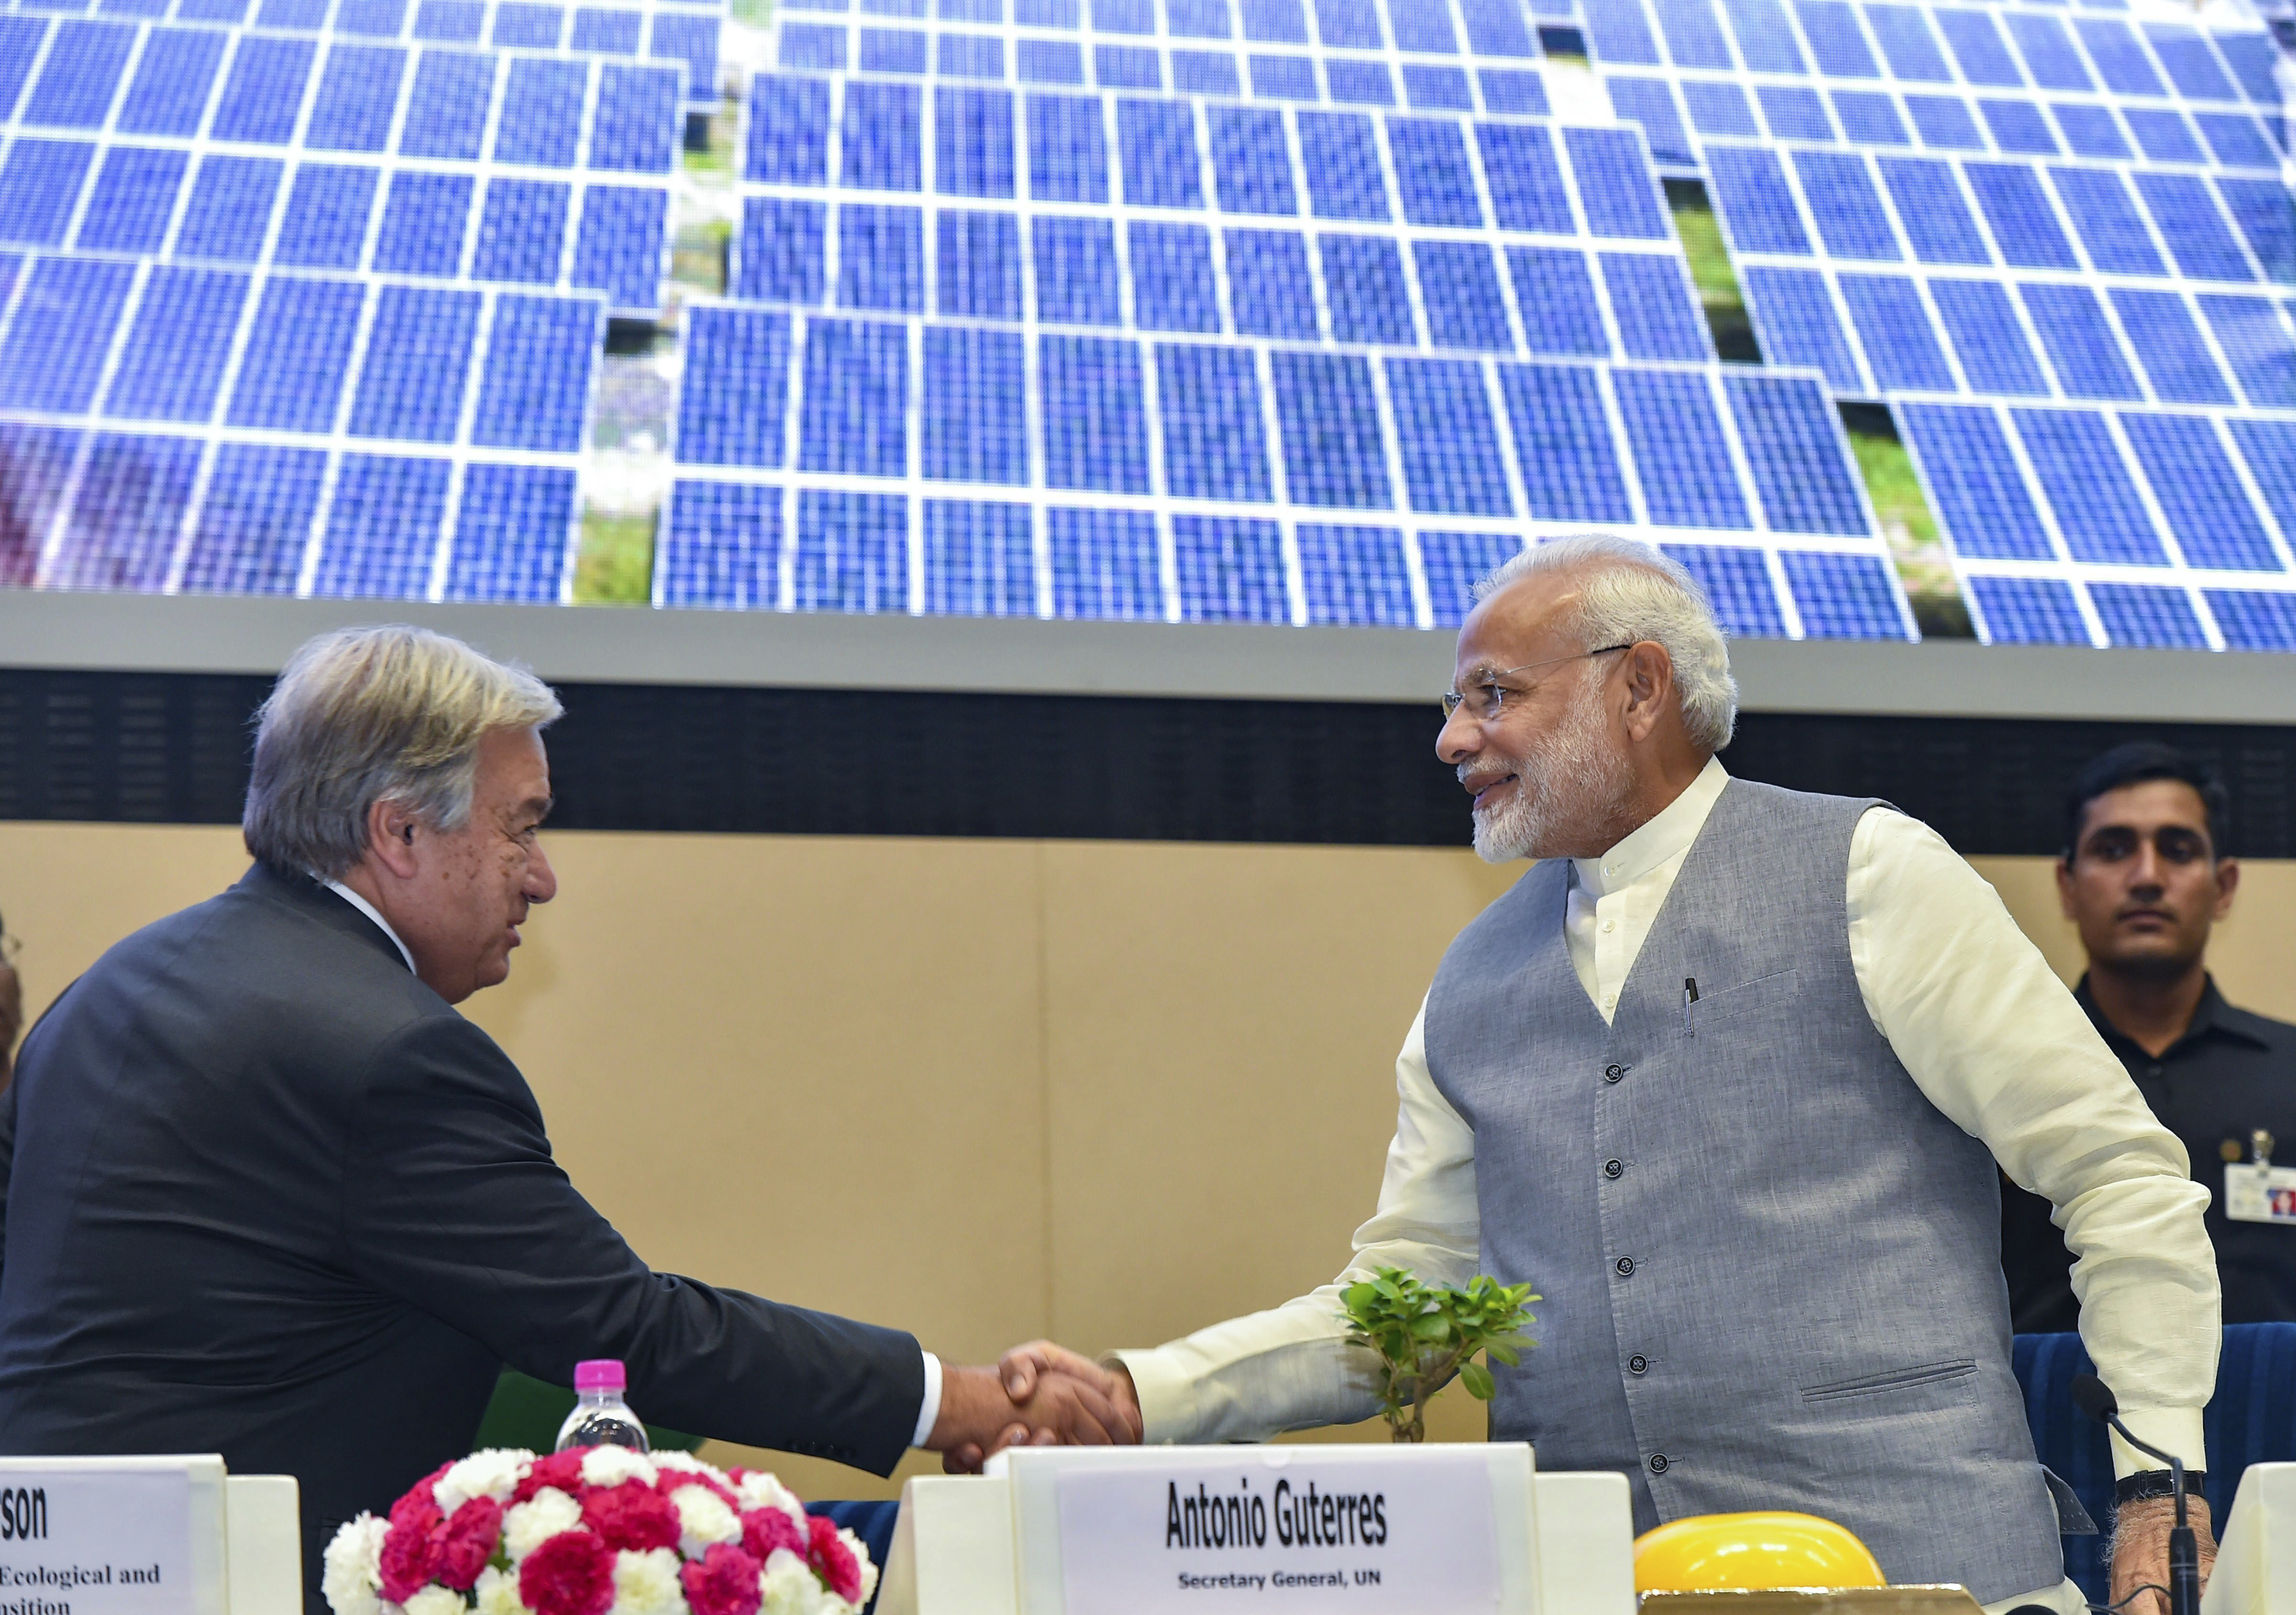 Prime Minister Narendra Modi and United Nations Secretary-General Antonio Guterres shake hands at the inauguration of 1st Assembly of International Alliance (ISA), 2nd IORA Renewable Energy Ministerial Meet & 2nd Global RE-Invest 2018, at Vigyan Bhavan in New Delhi - PTI